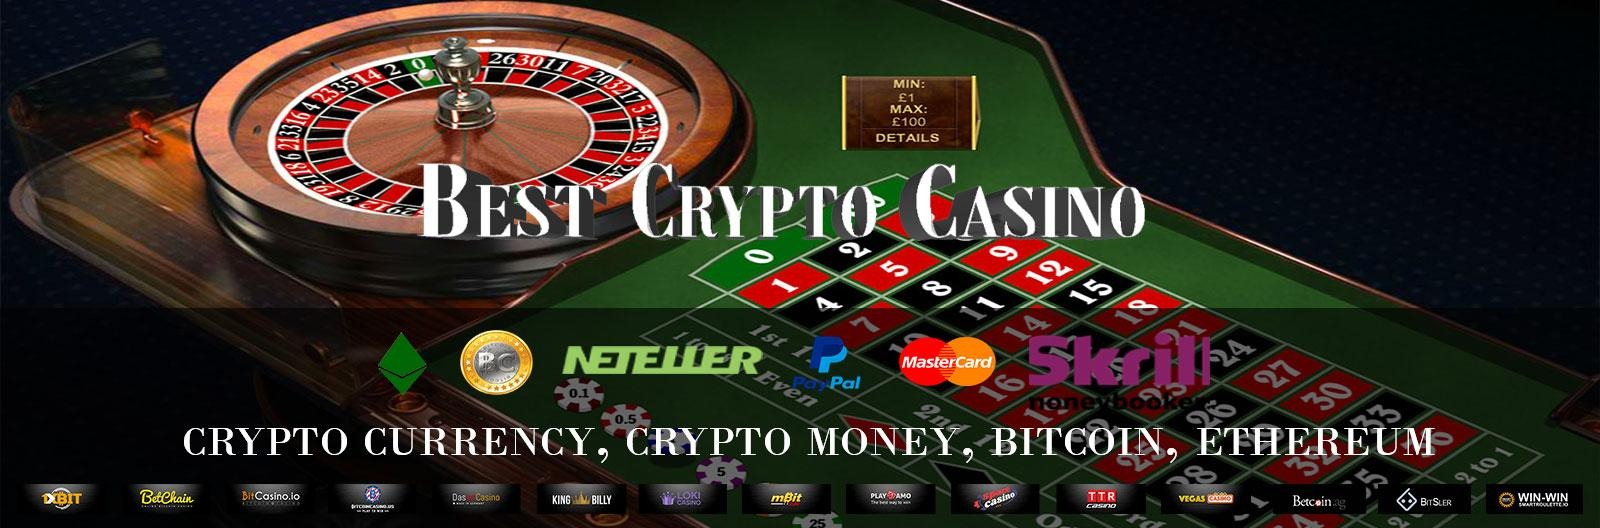 Bitcoin casino dingo welcome bonus